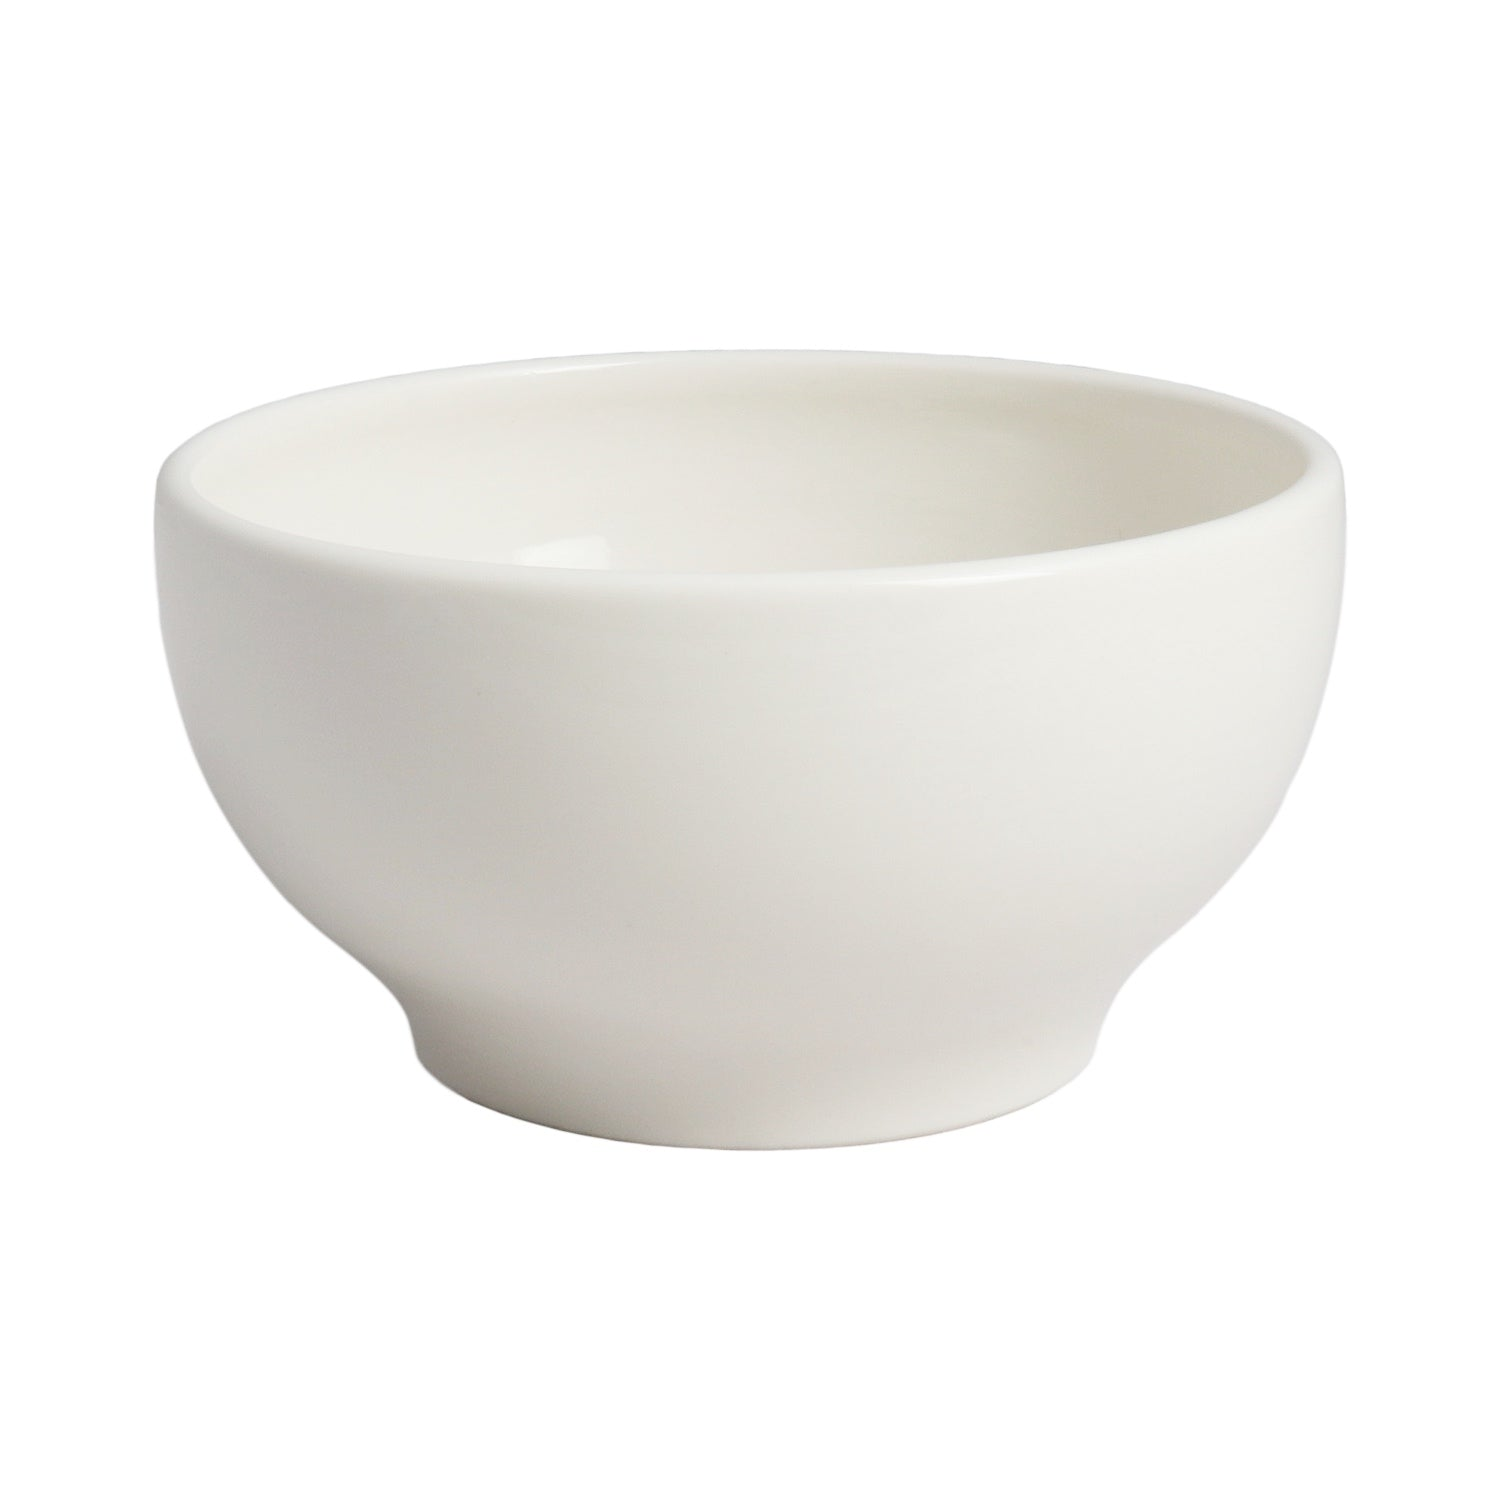 Classic Porcelain Simple Bowl - 13cm